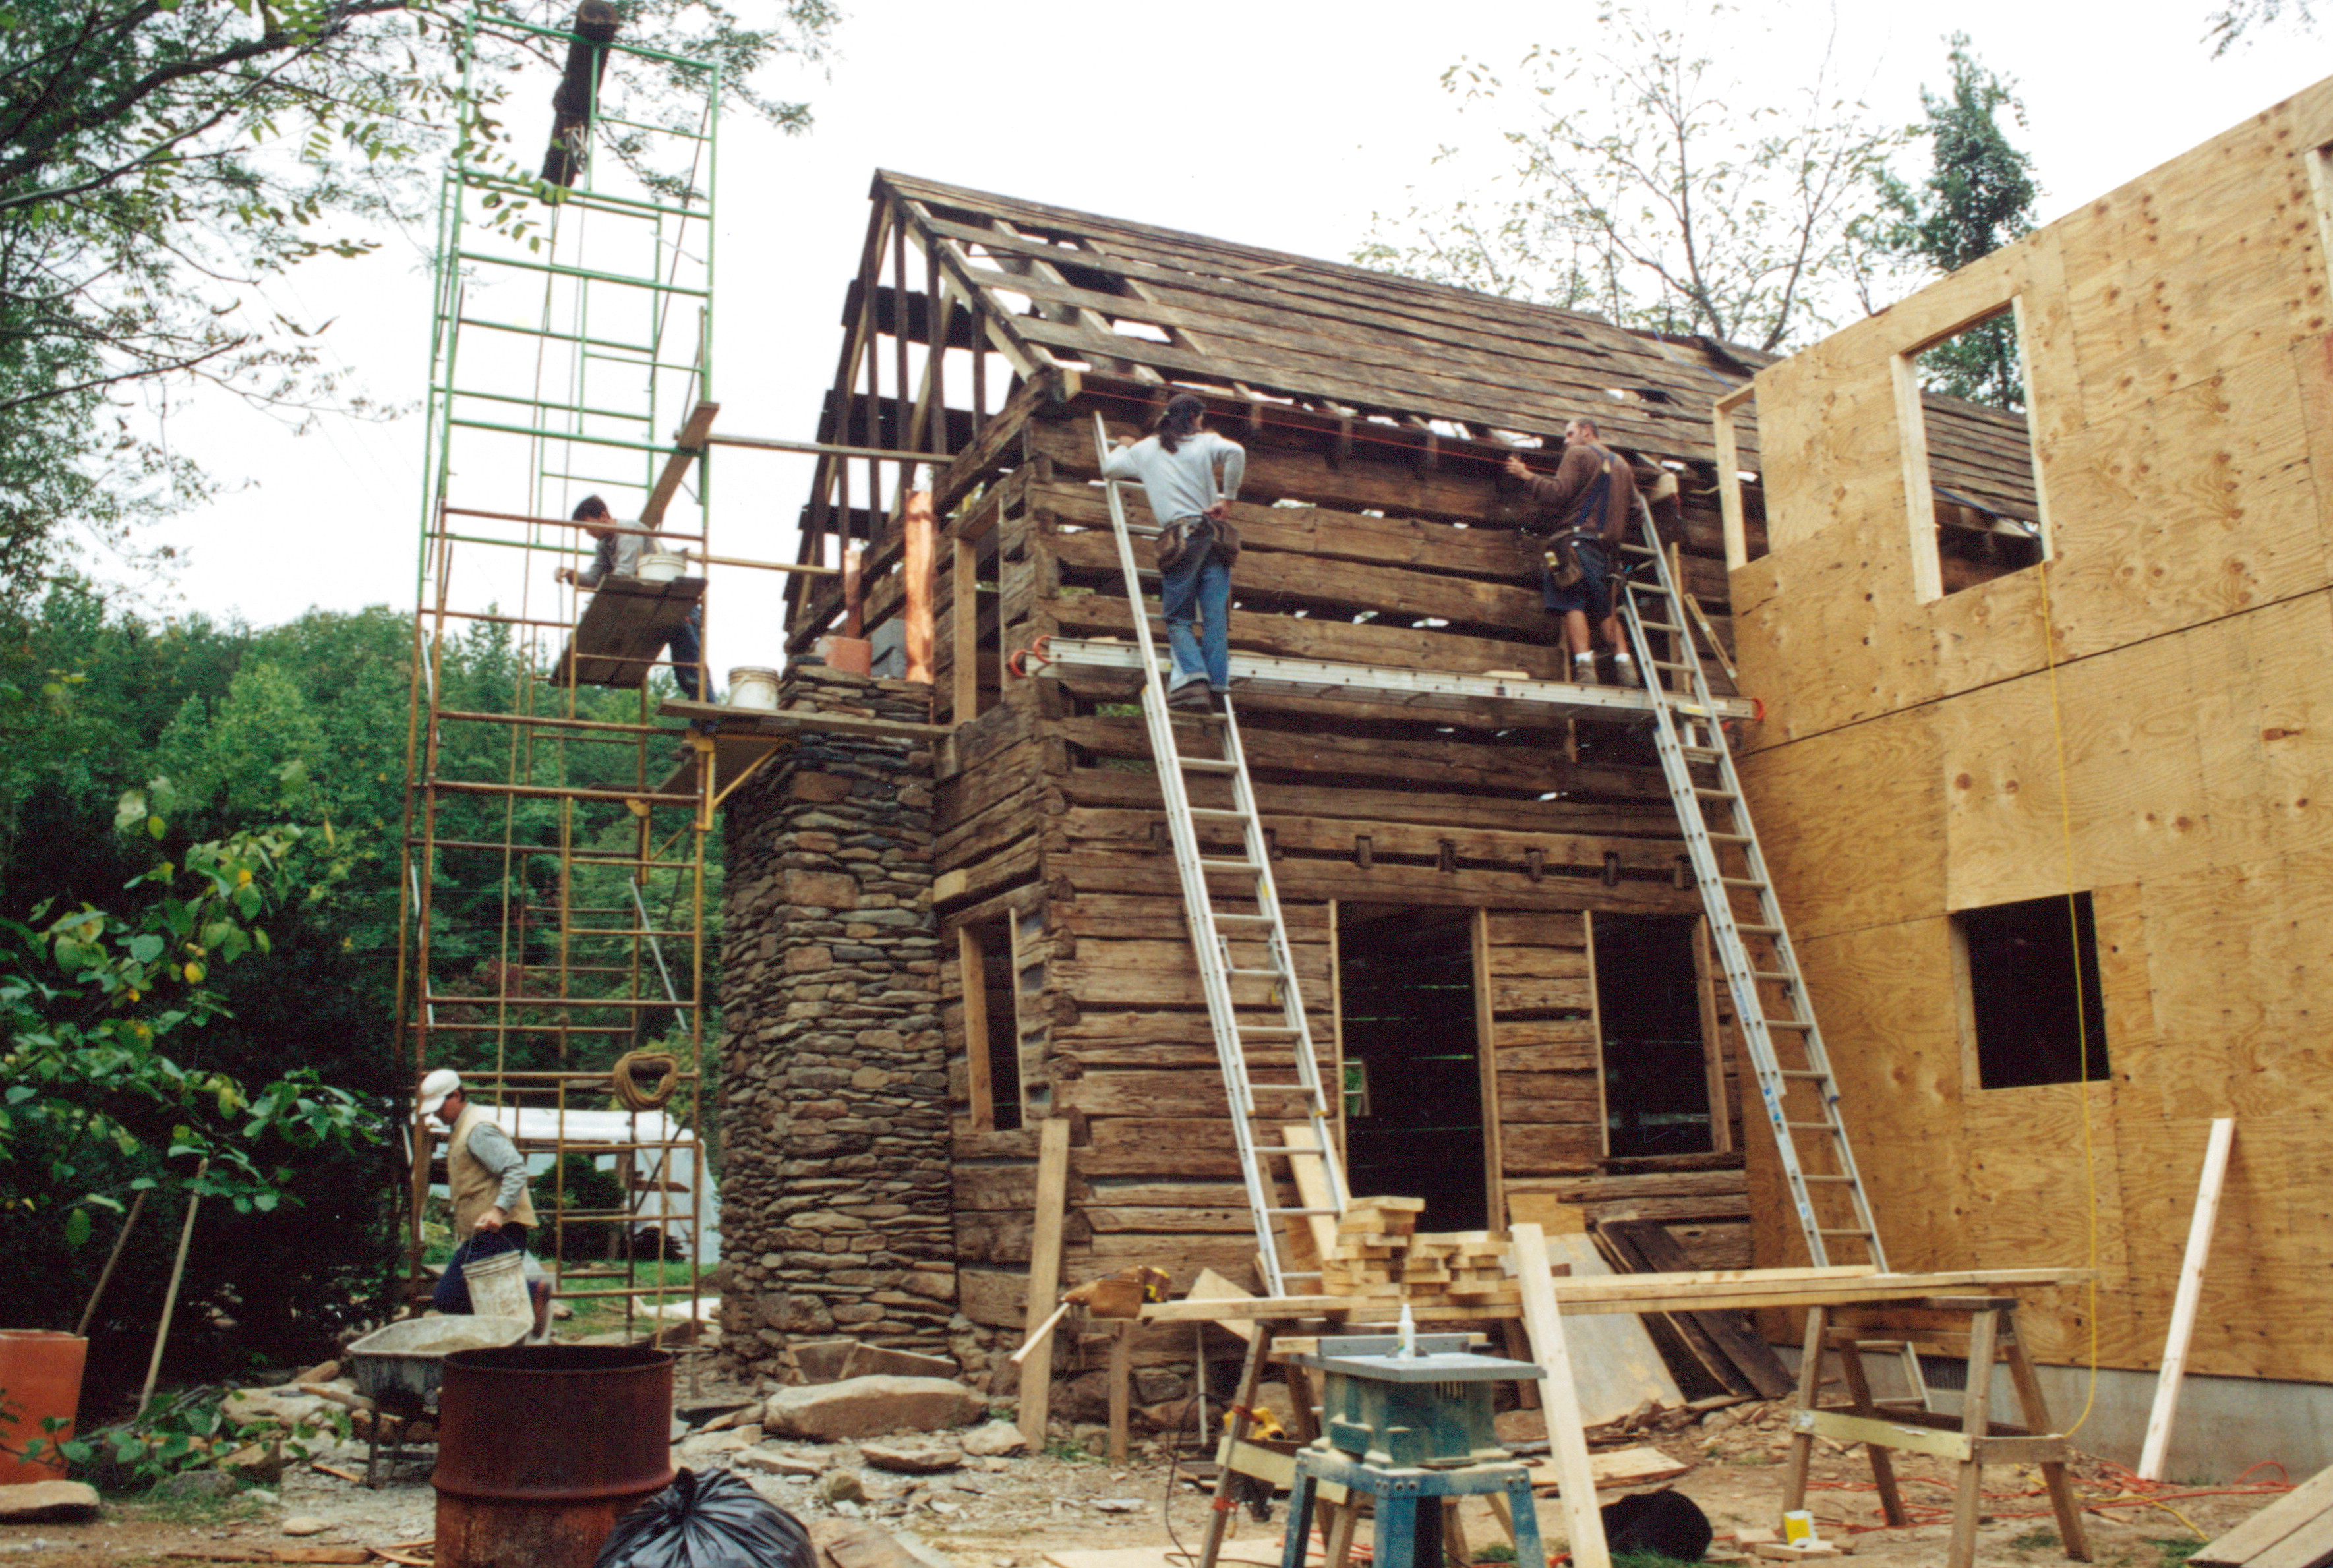 Log cabin restoration part 12 handmade houses with for Log cabin restoration